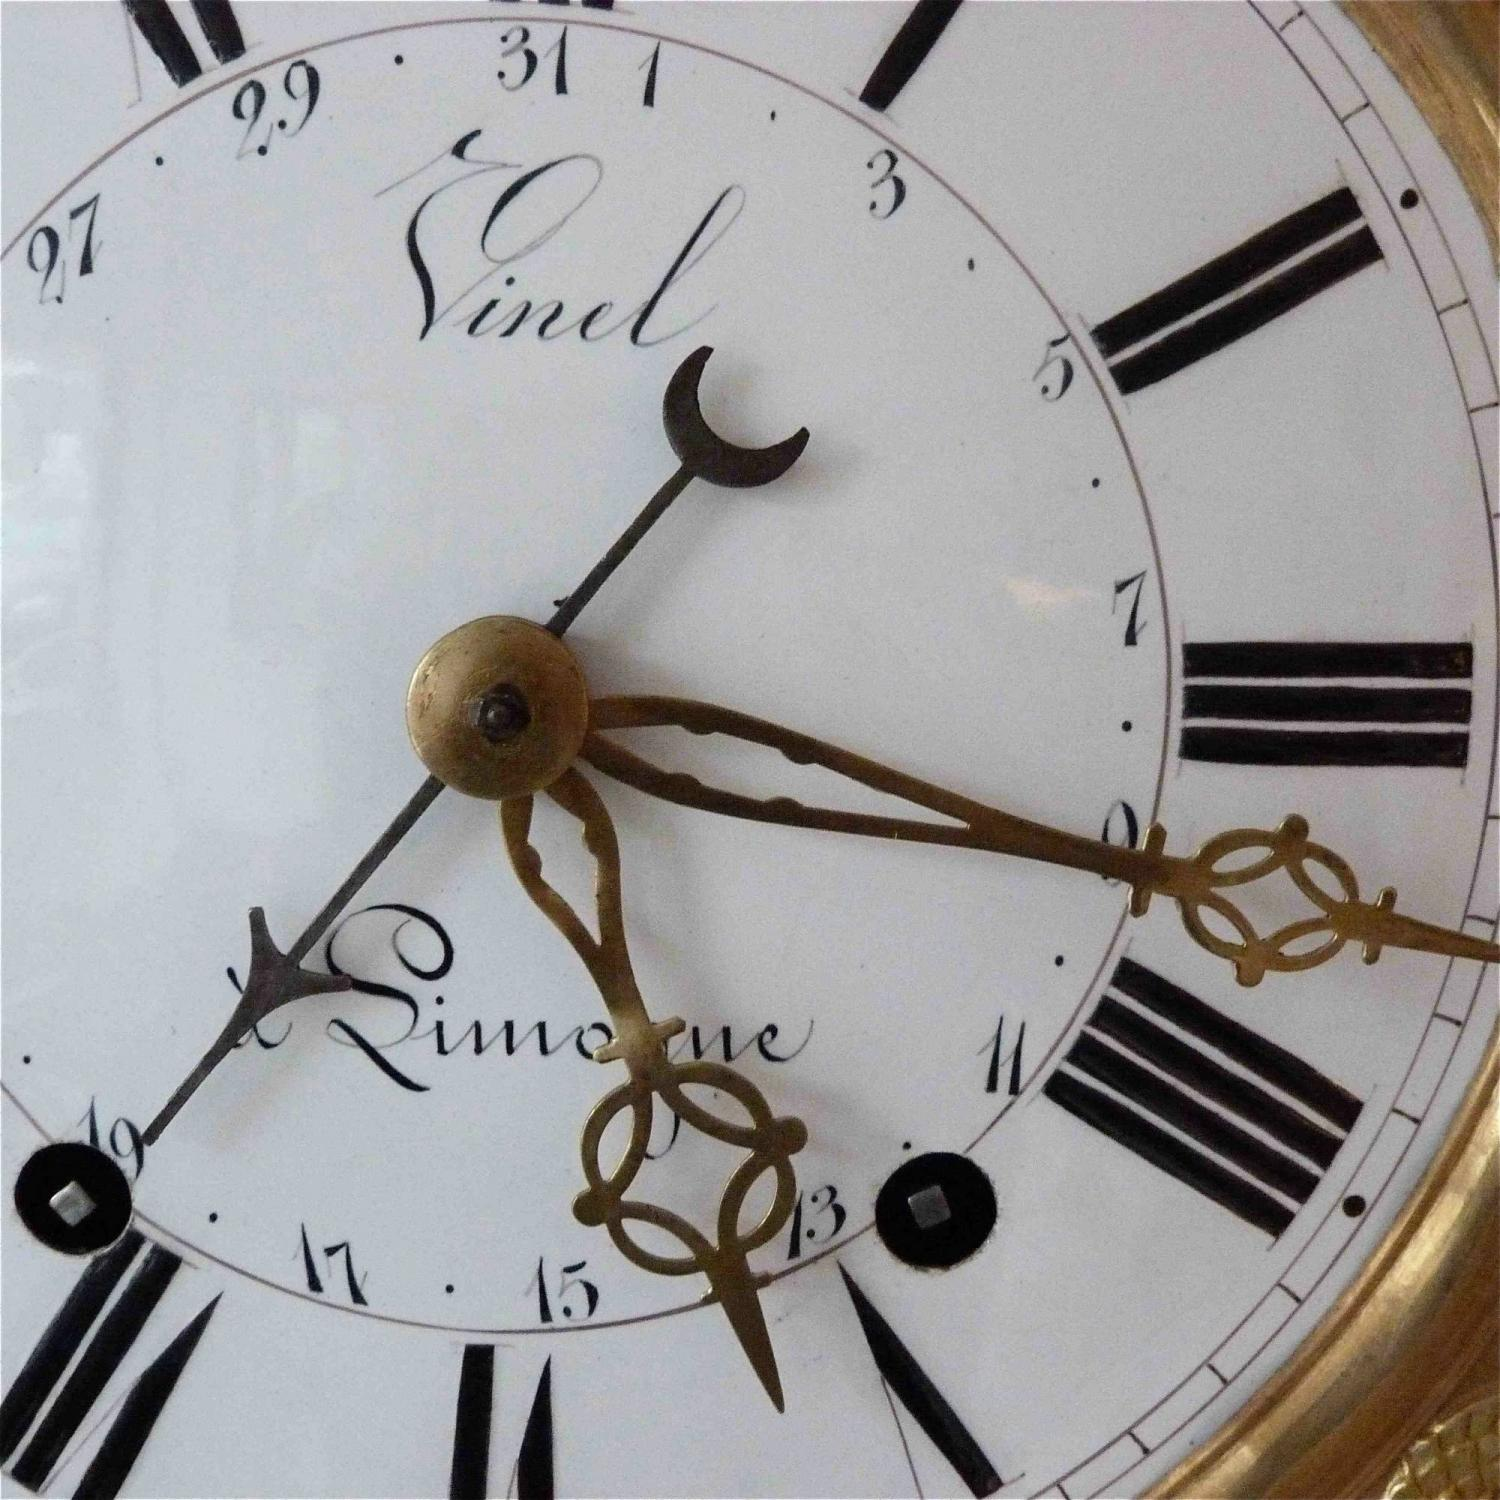 EARLY 19TH CENTURY COMTOISE LONG CASE CLOCK